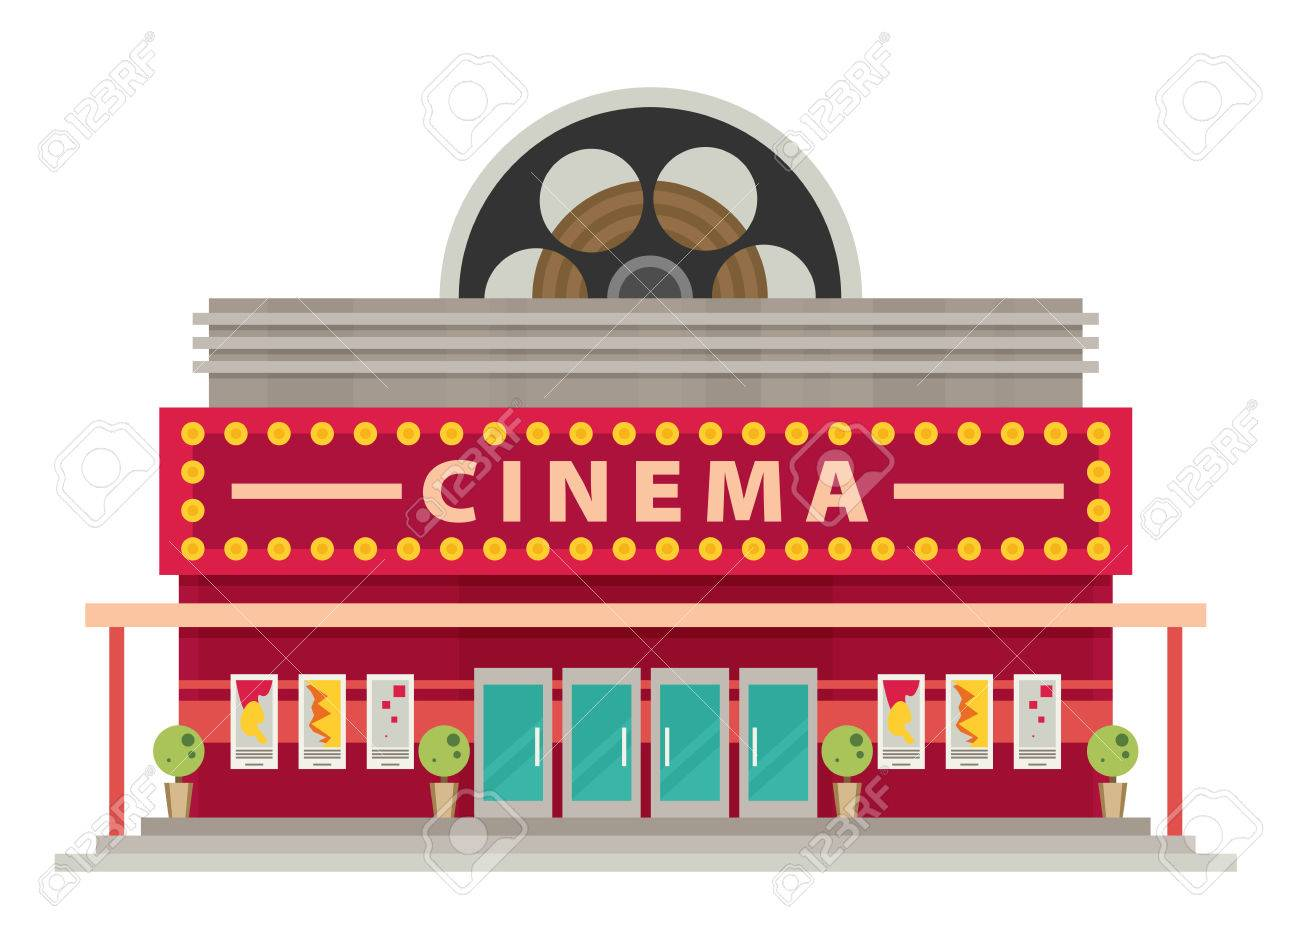 cinema building flat style movie theater royalty free cliparts rh 123rf com movie theater clipart black and white movie theater popcorn clipart